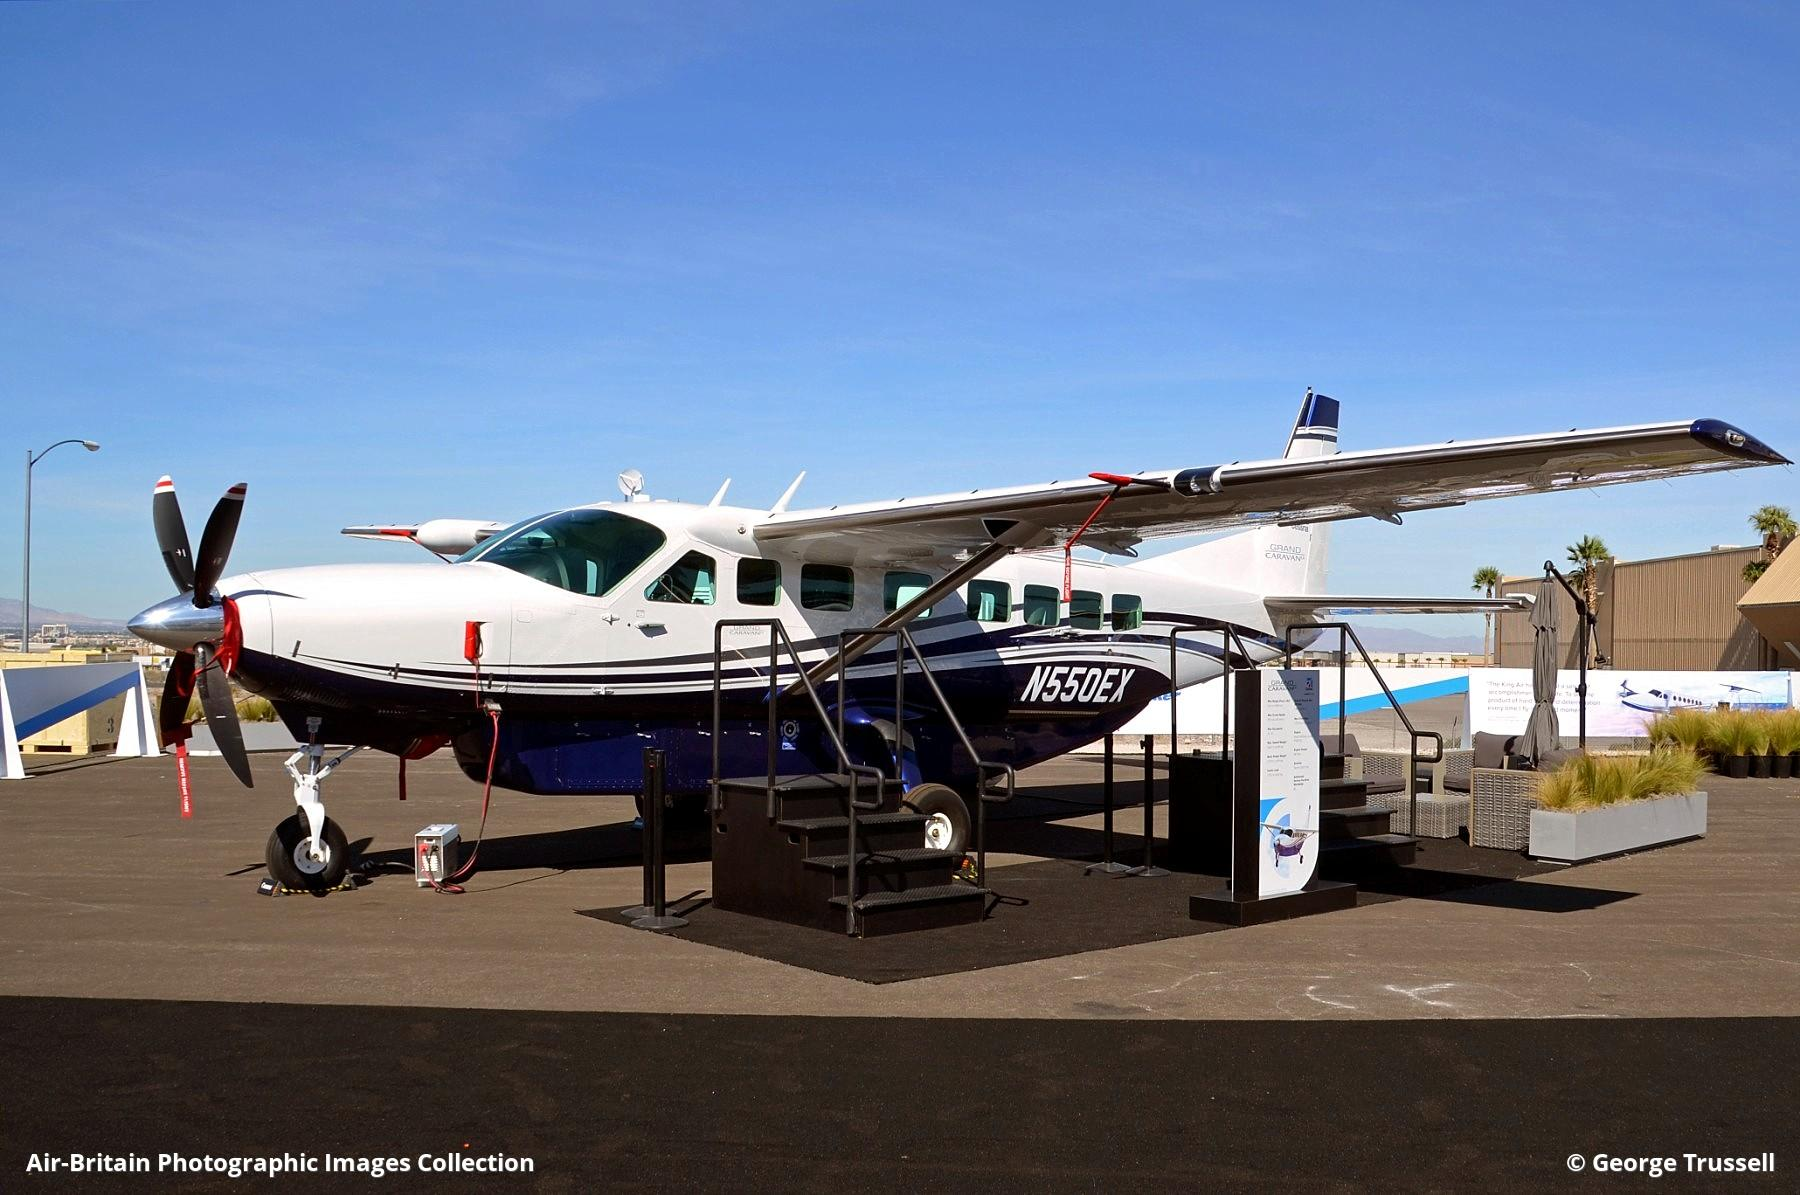 Aviation Photographs Of Cessna 208b Grand Caravan Ex Abpic